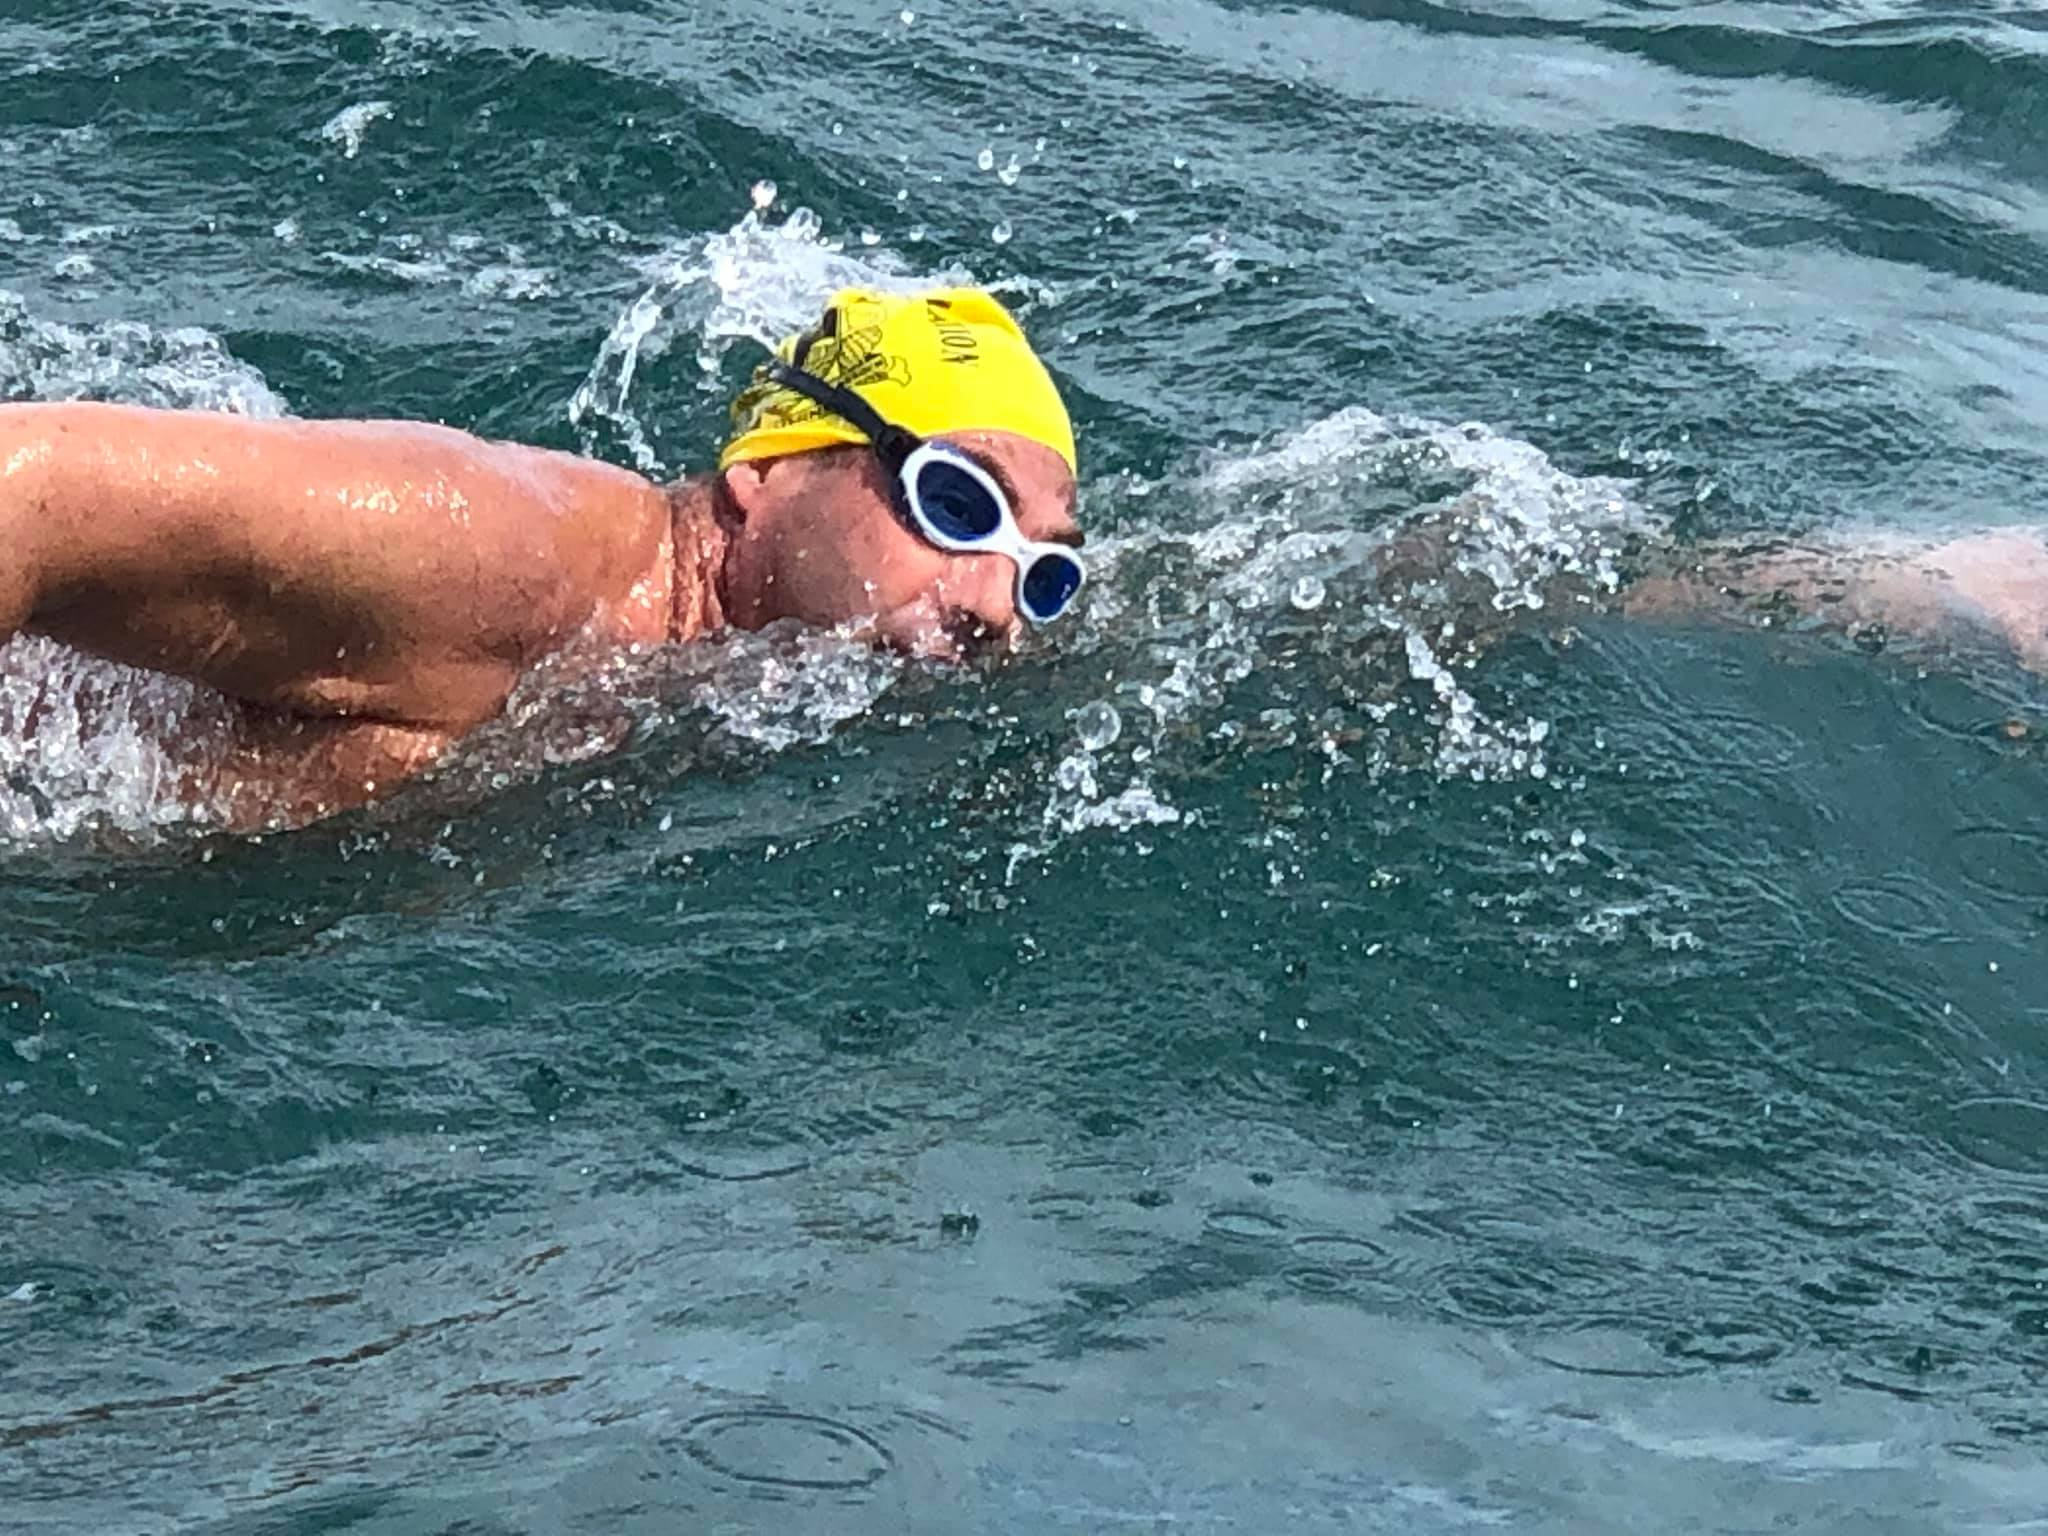 David Sanger swimming the channel for Treloar's